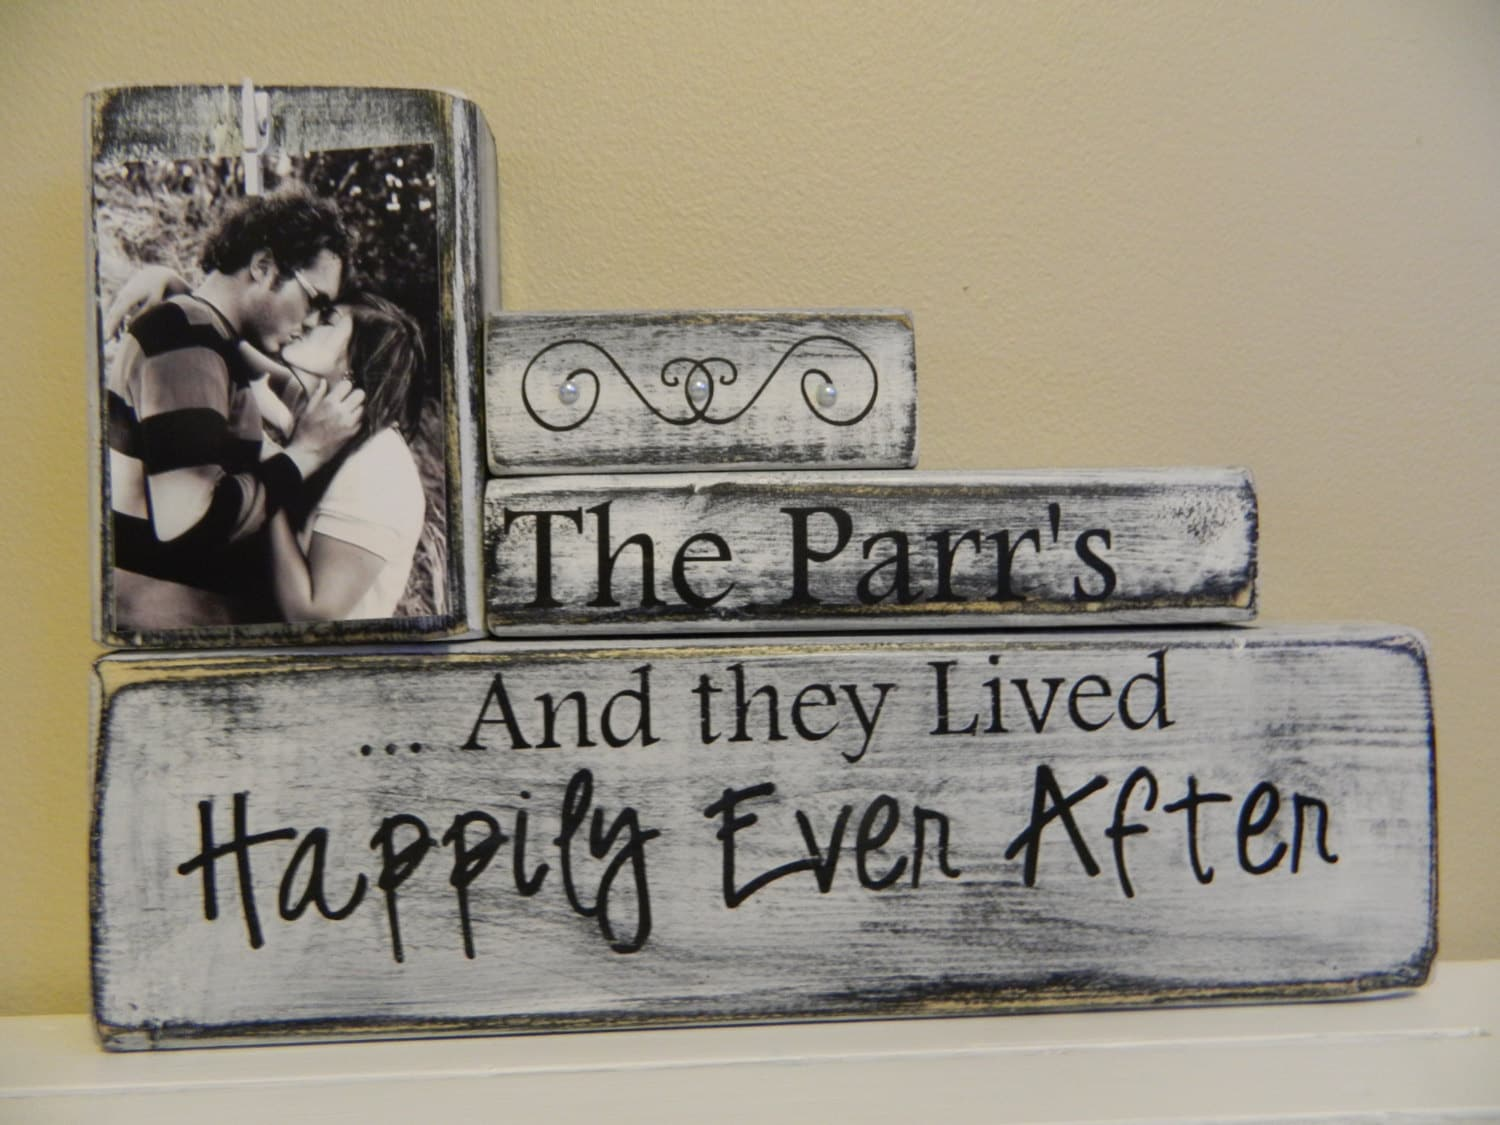 Unique Wedding Gifts Personalized : Ideas Personalized Wedding Gifts For Couple wedding gifts ideas for ...